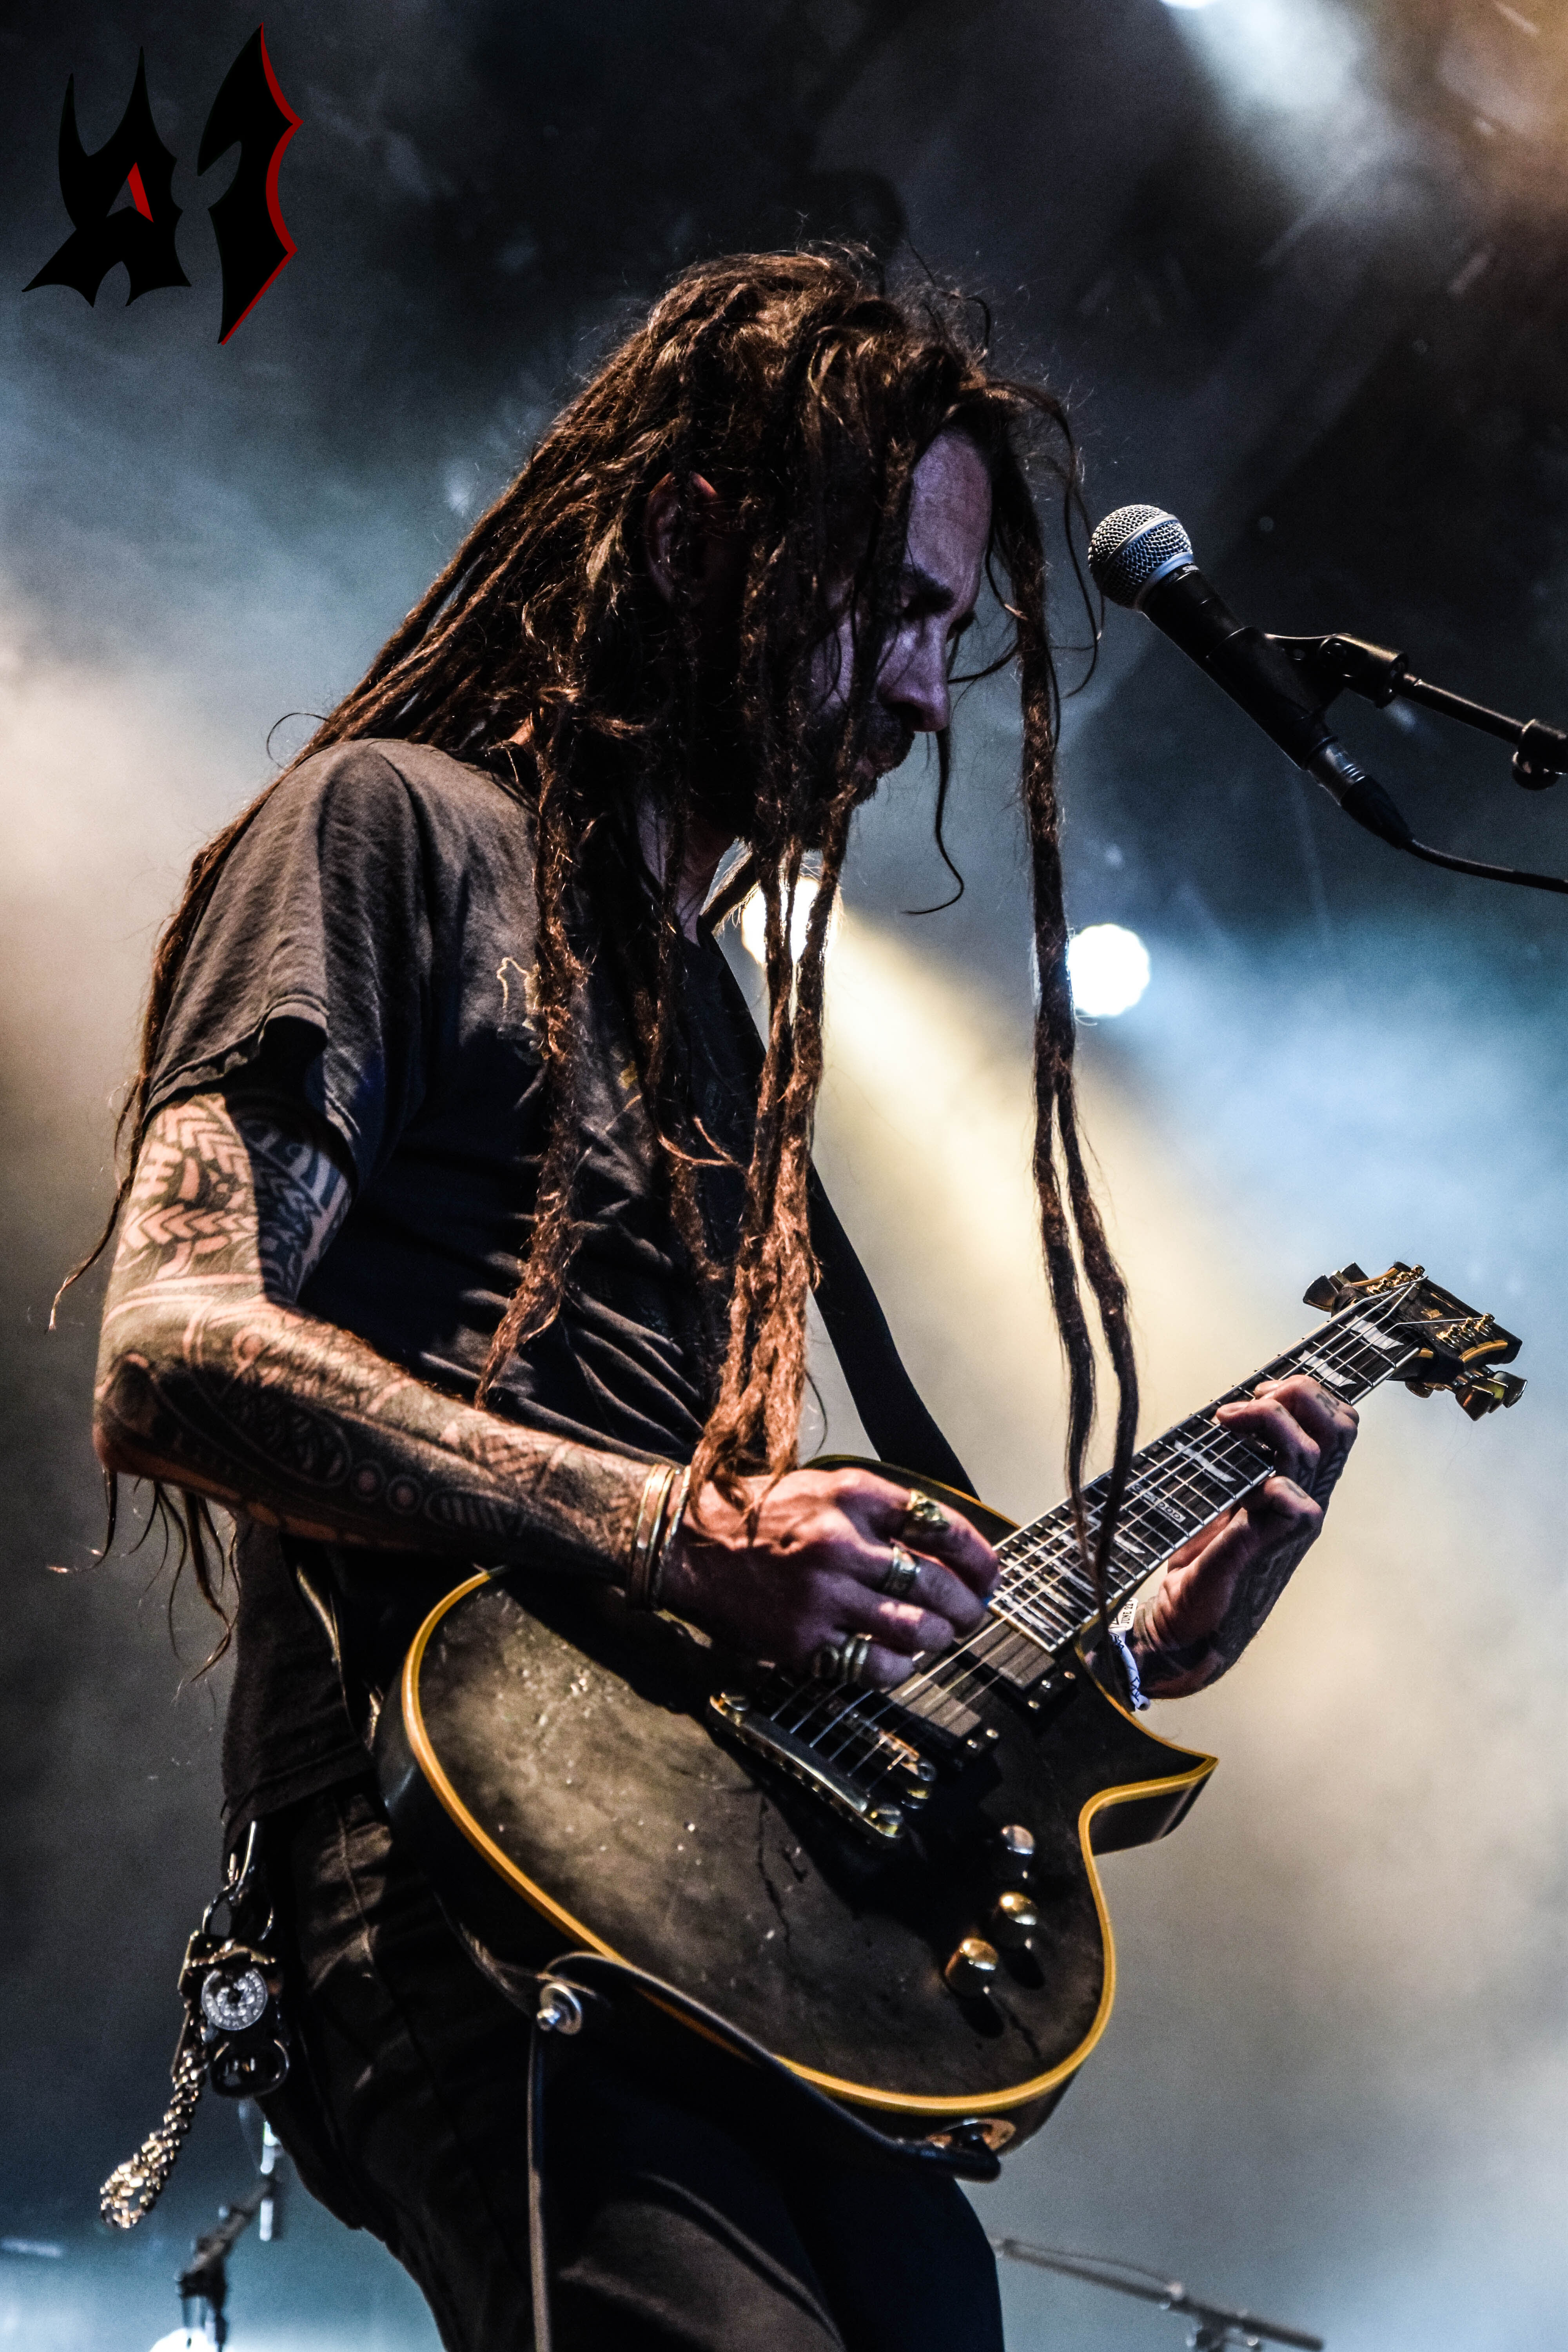 Hellfest - Day 1 - Dopethrone 15